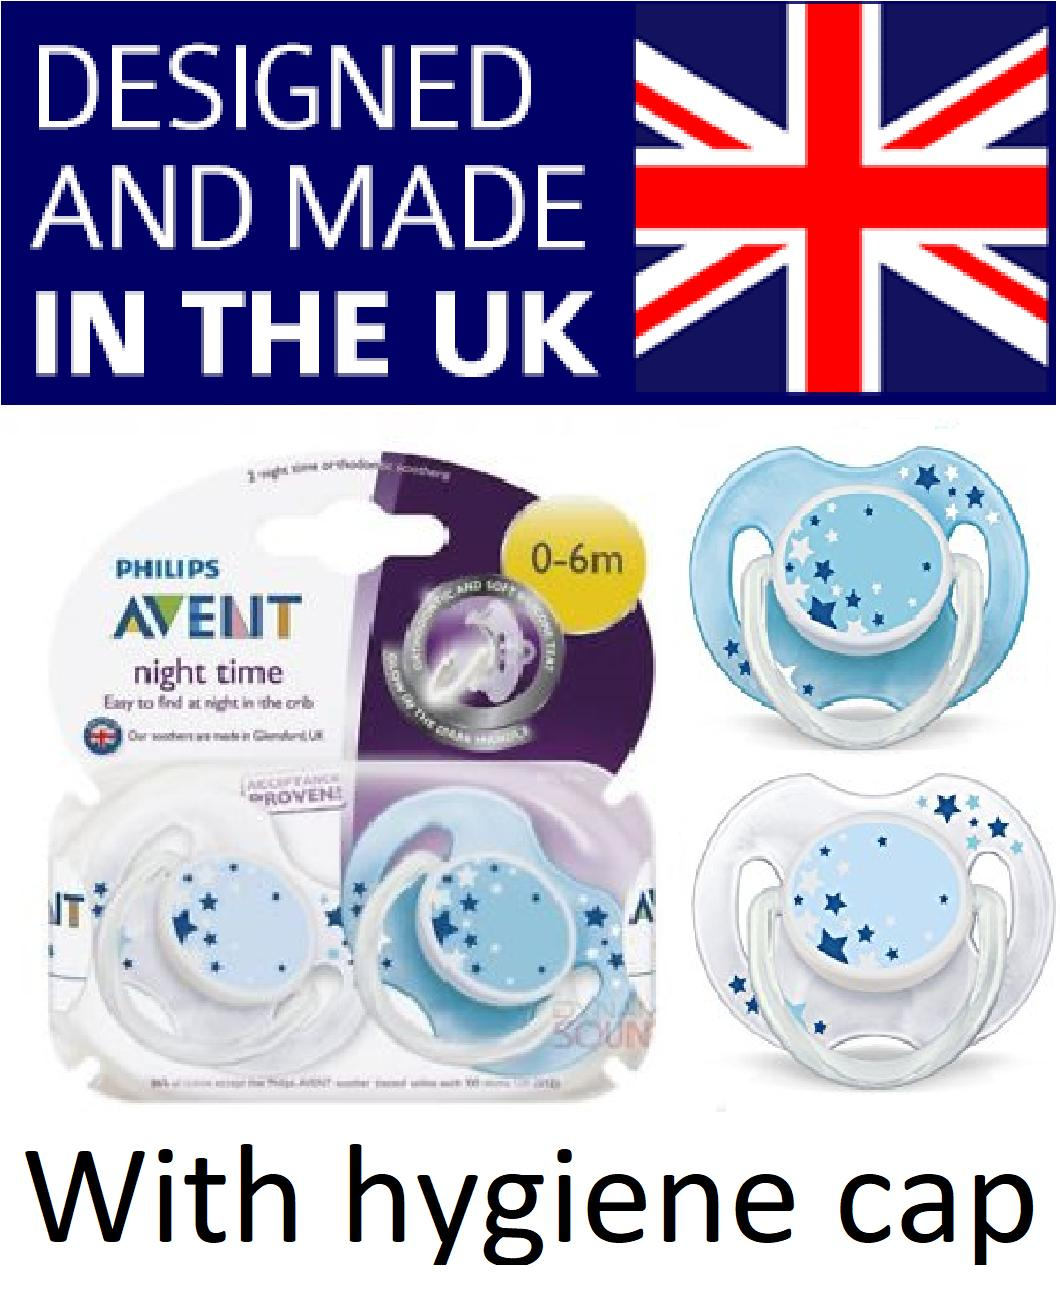 2 Philips Avent Glow In The Dark Pacifier / Soother / Dummy Night Time Blue Stars Design - Made In Uk With Snap On Cap. 0-6m By Imaginarium.